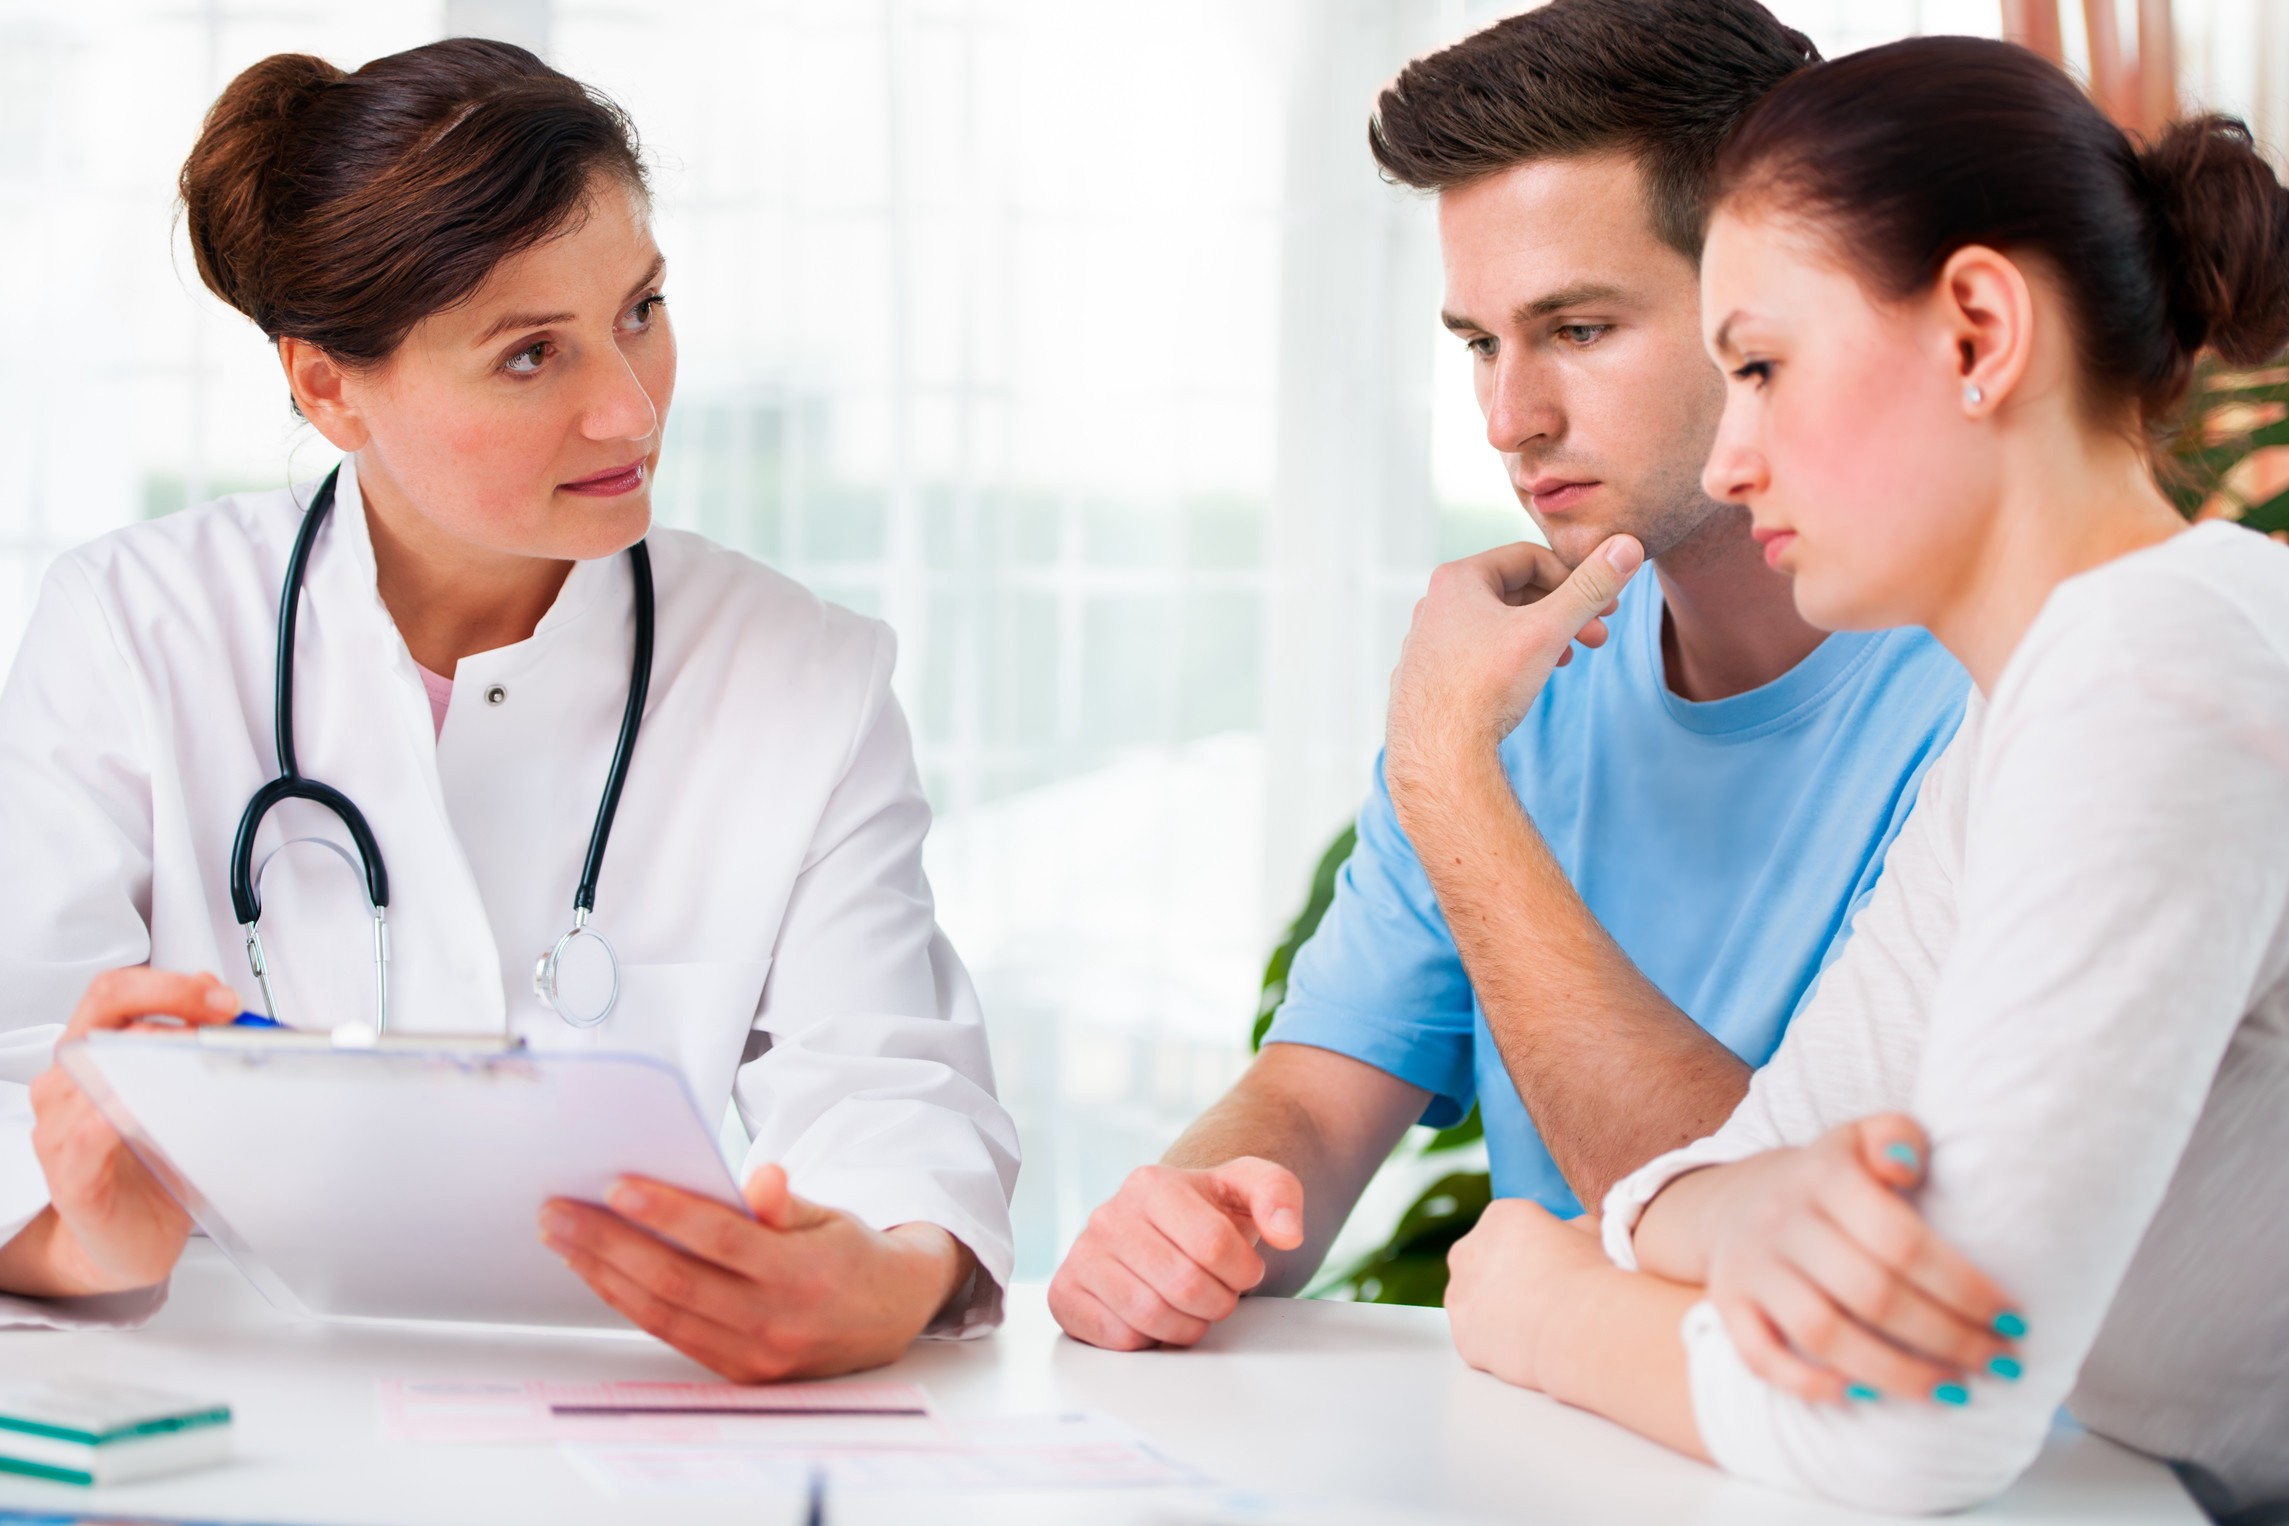 What Should You Know Before Meeting An Infertility Specialist?